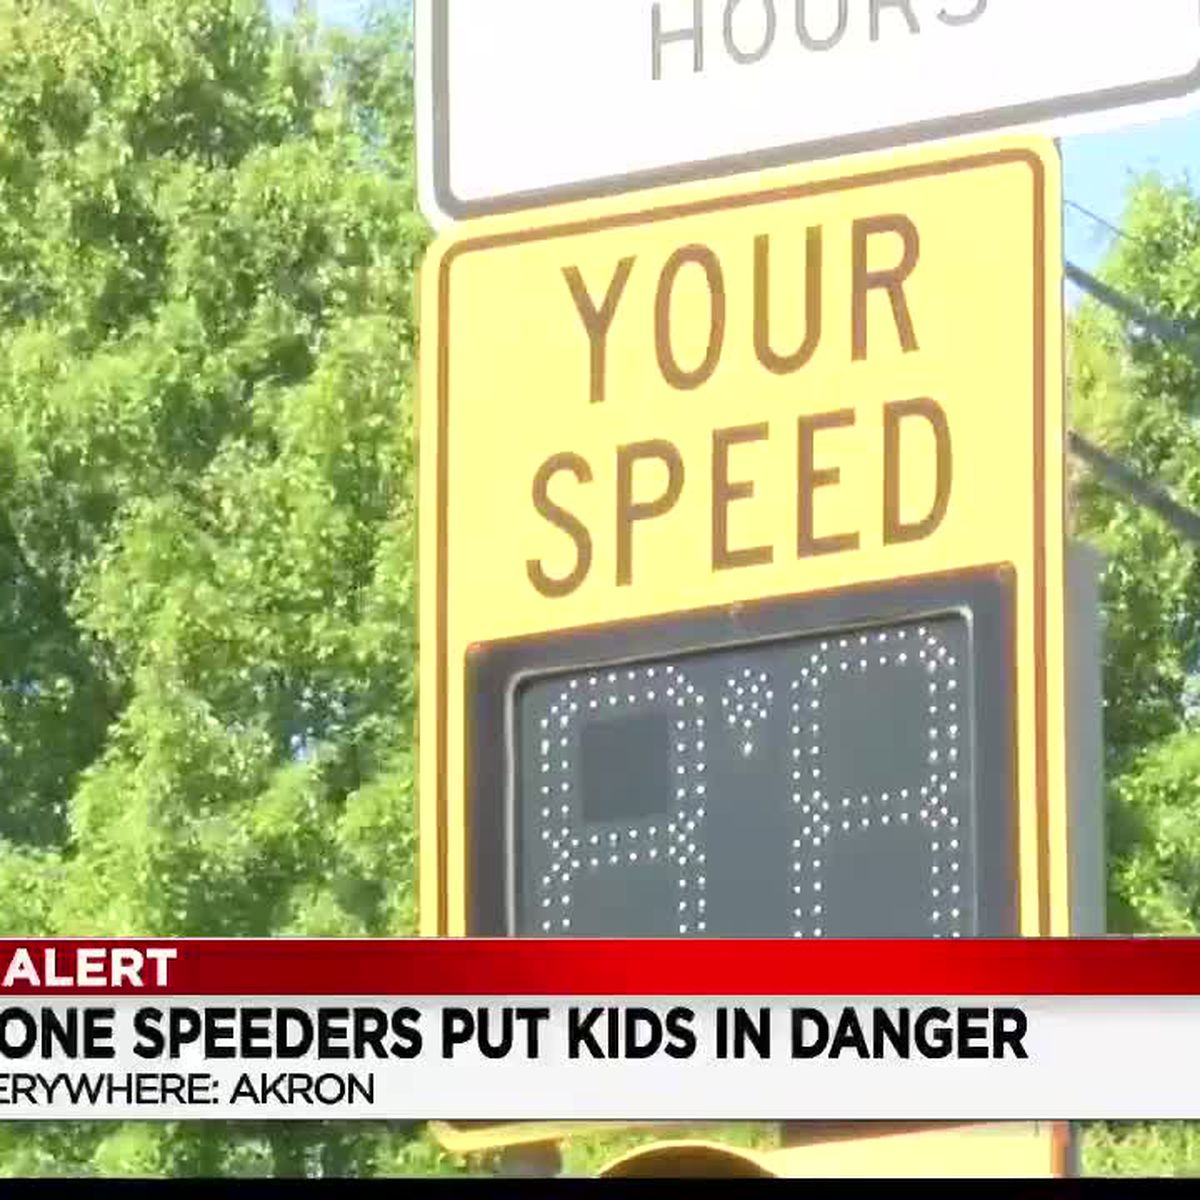 Akron-area school officials asking drivers to slow down, watch for students collecting meals